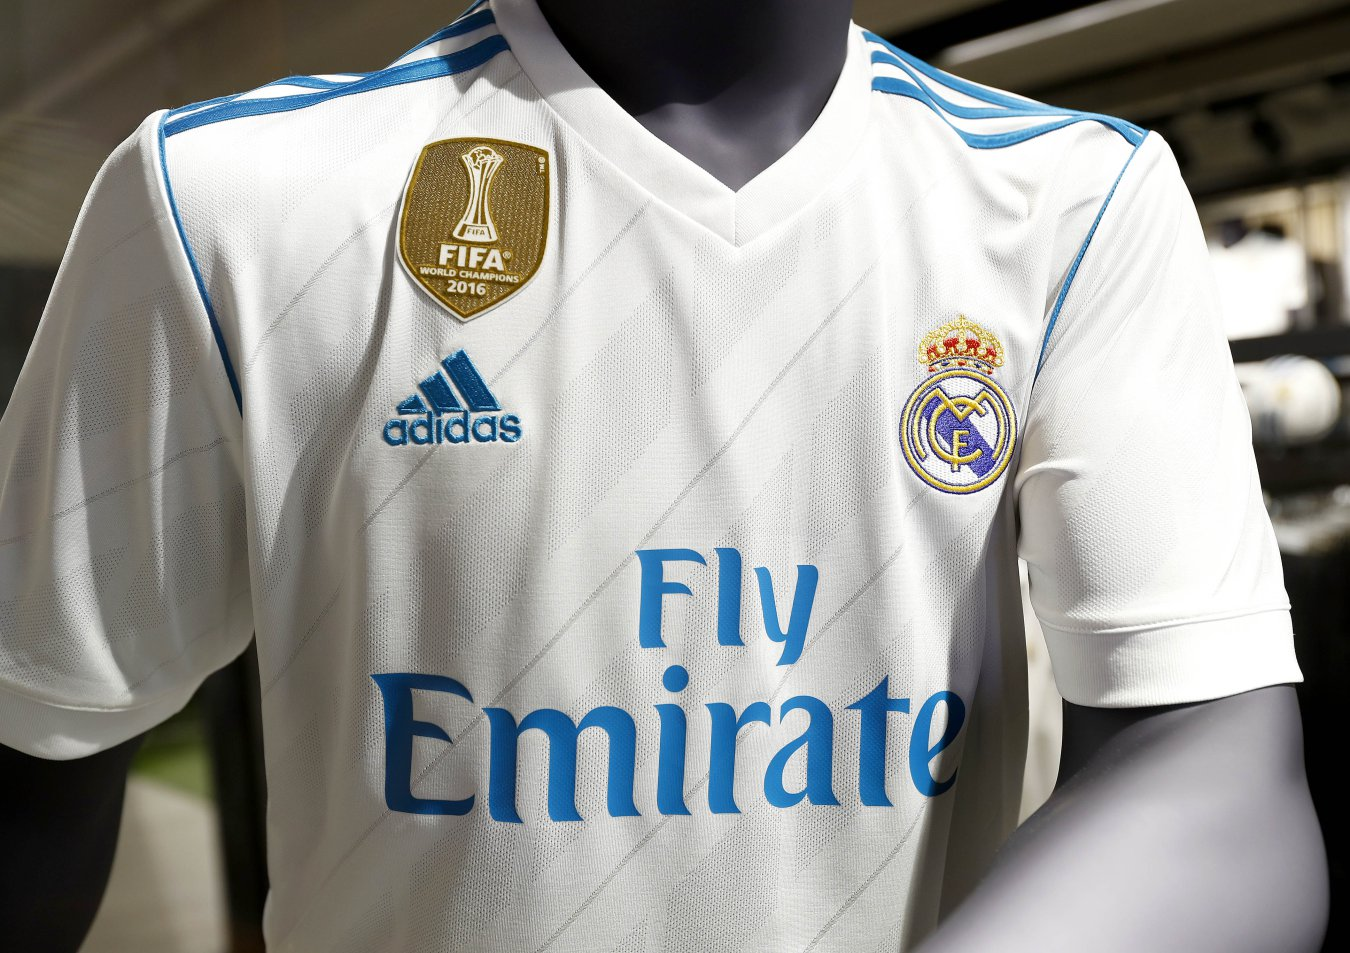 e635bbcd27007 El Real Madrid presenta sus camisetas para la 2017-2018 - AS.com